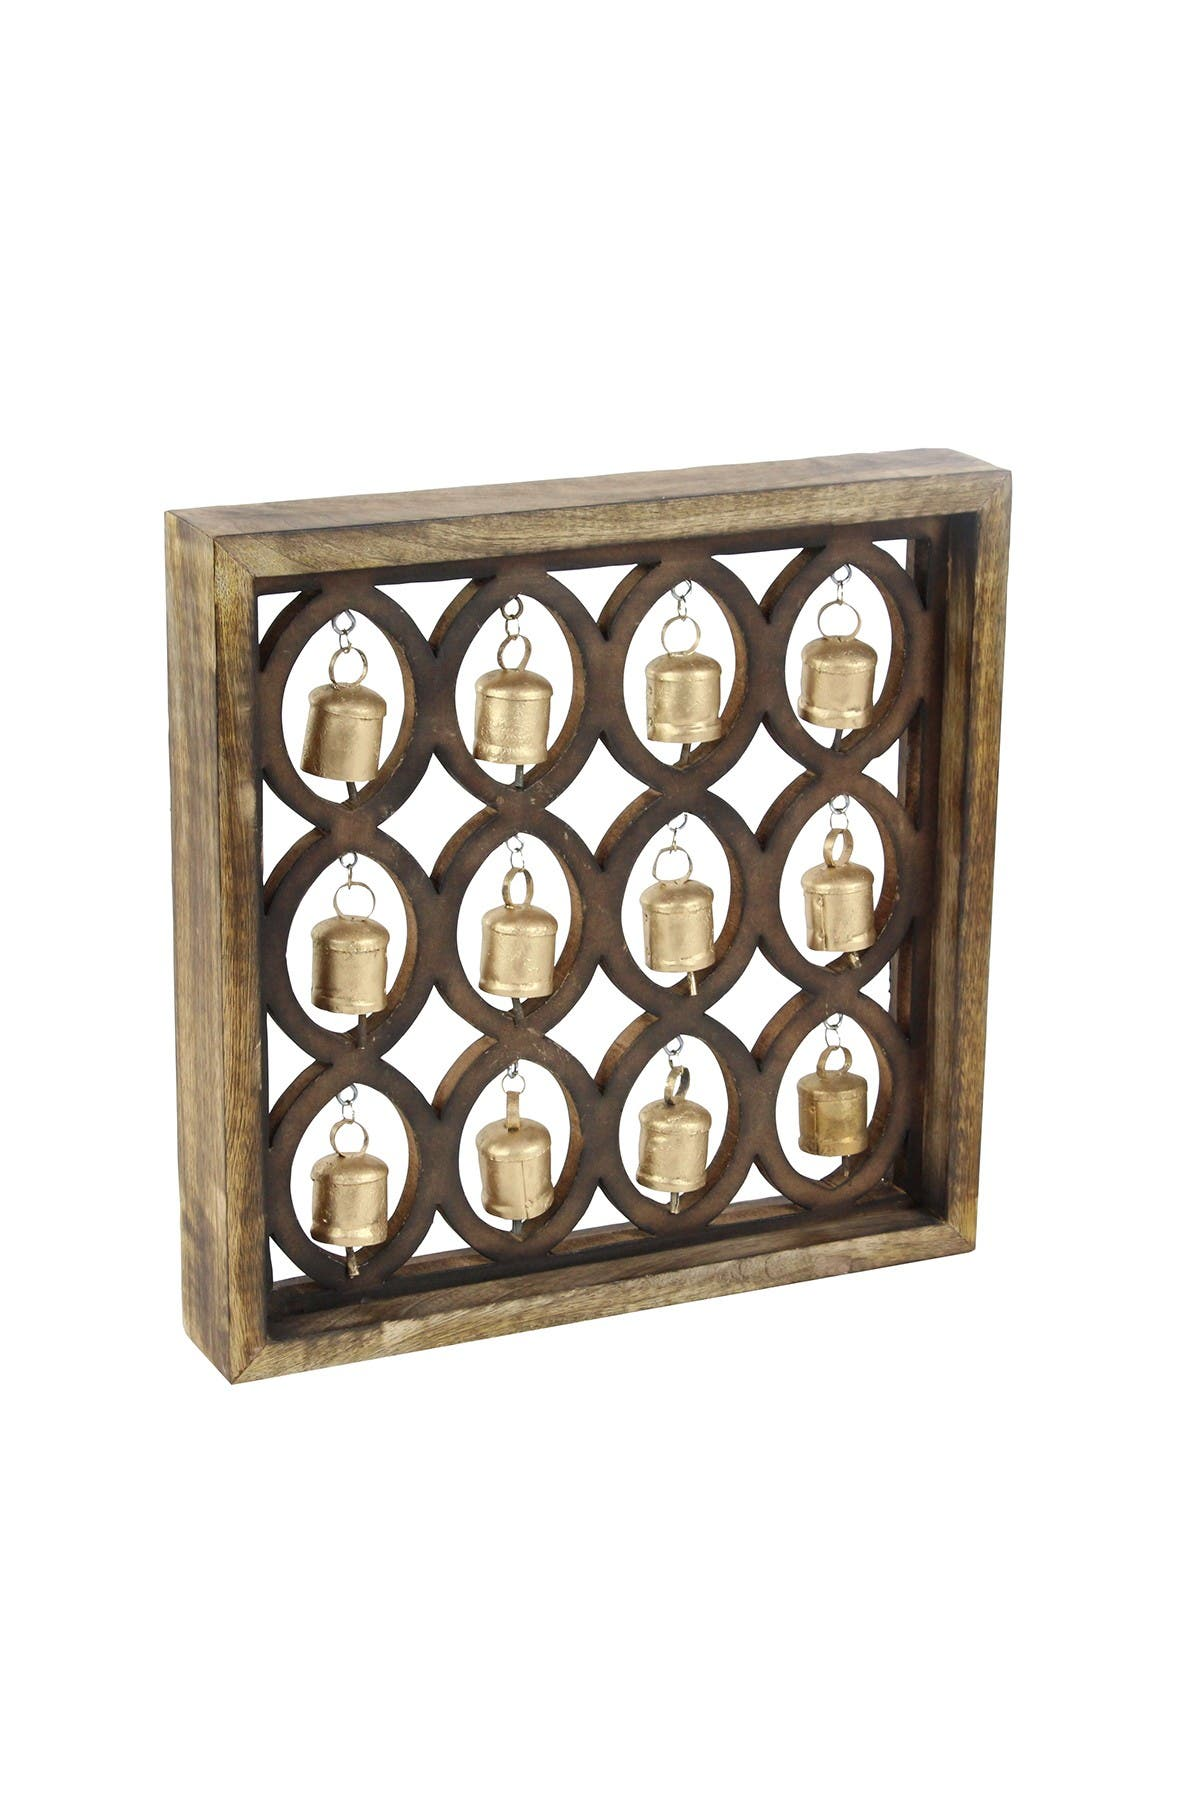 "Image of Willow Row Oval-Patterned 17"" x 17"" Wooden Wall Plaque With Metal Bells"